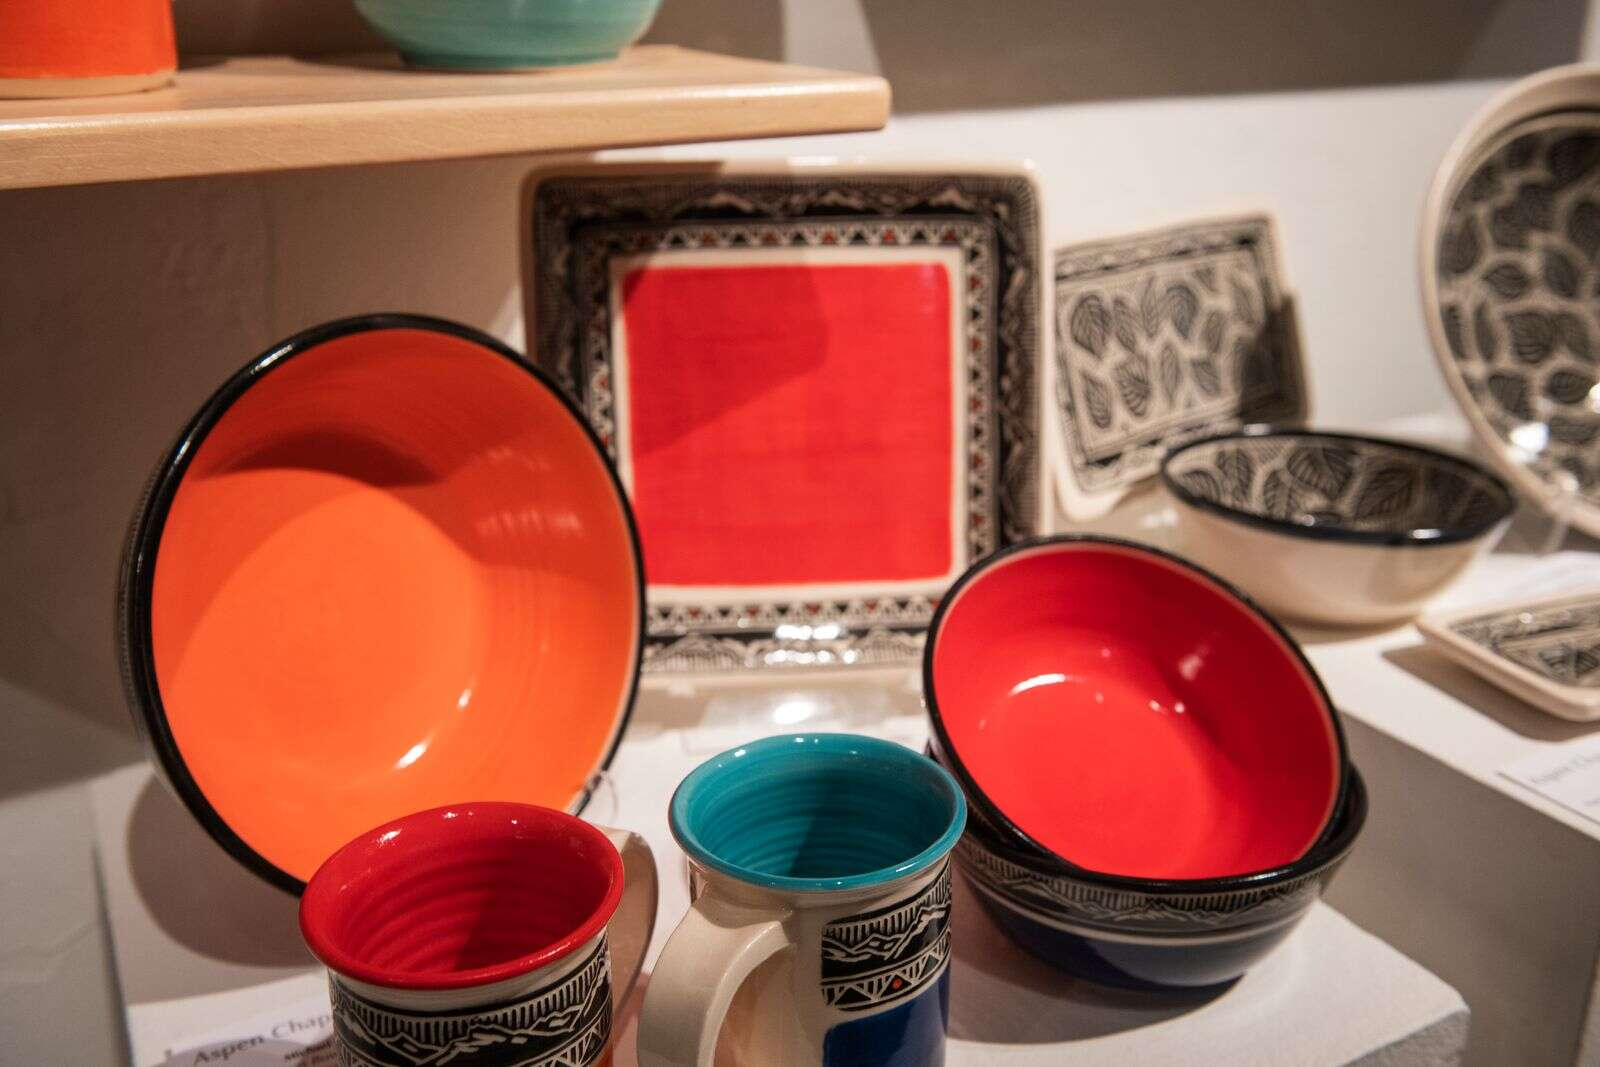 Work by Michael Bonds is displayed in the Aspen Chapel Gallery for the Small Wonders holiday show and sale on Tuesday, Nov. 17, 2020. (Kelsey Brunner/The Aspen Times)